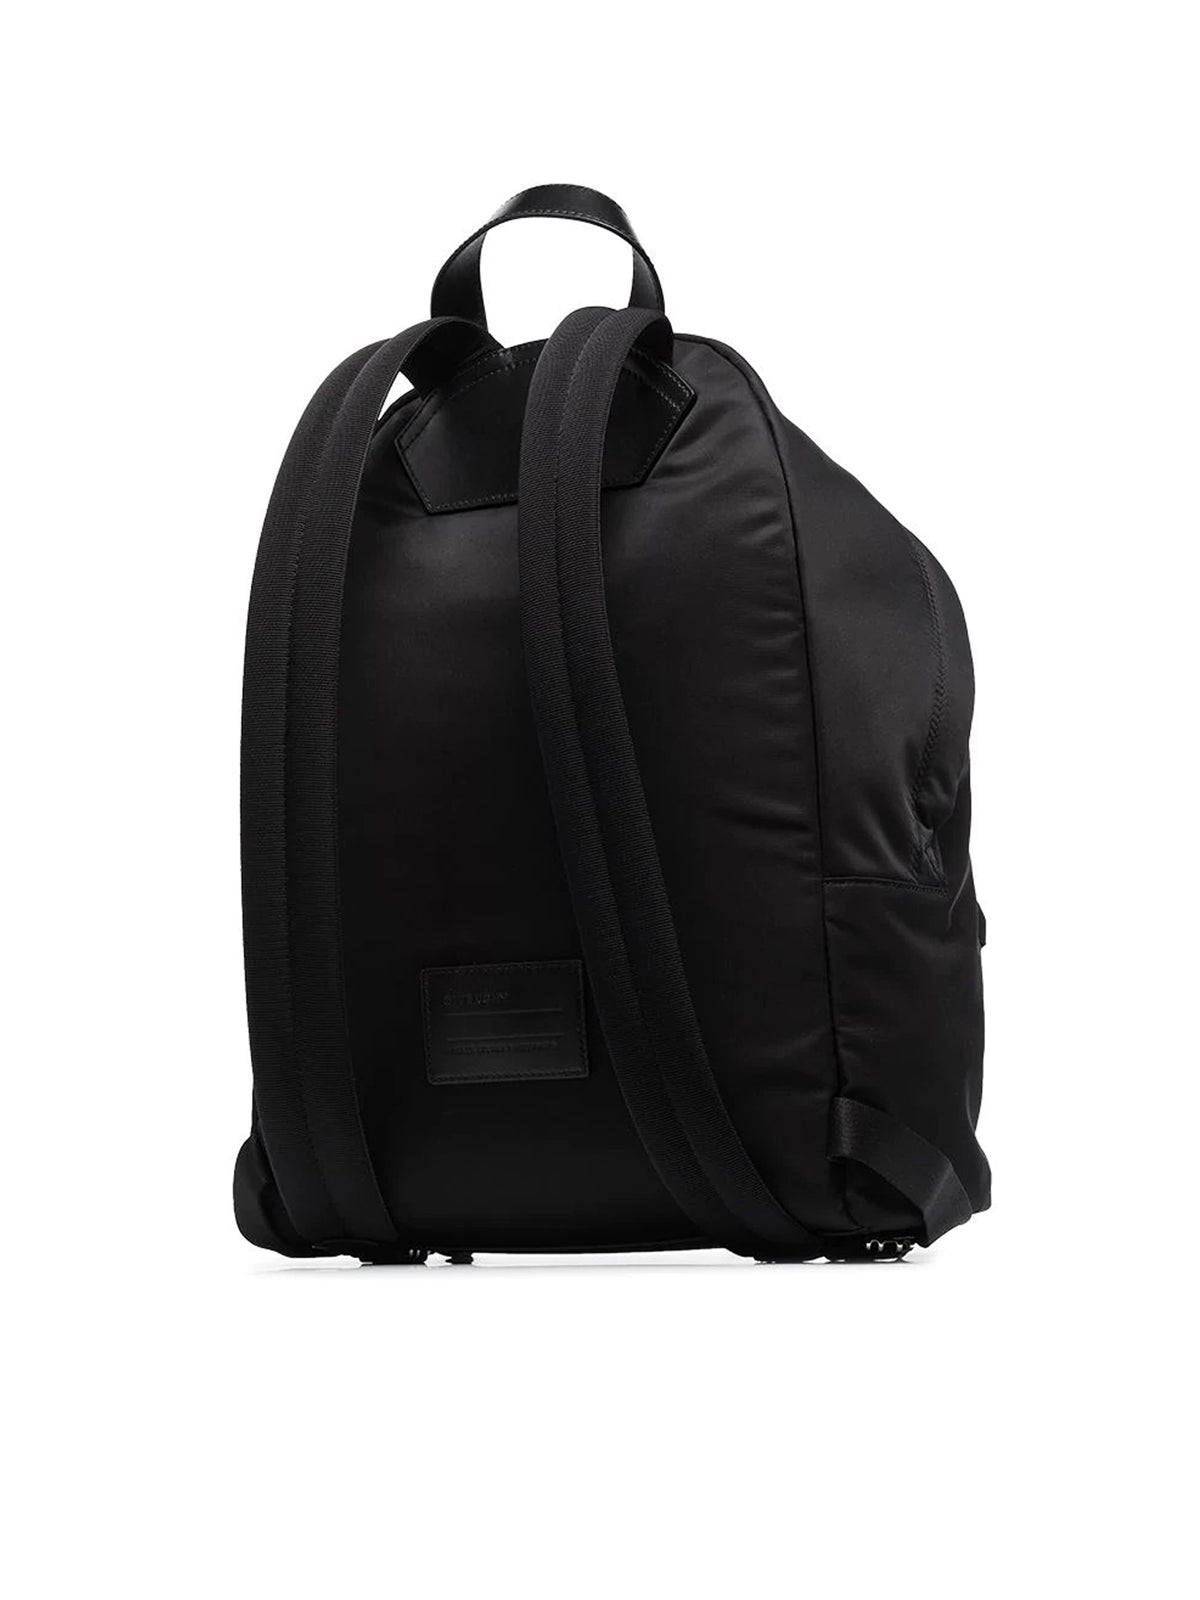 Urban Sunset backpack with logo